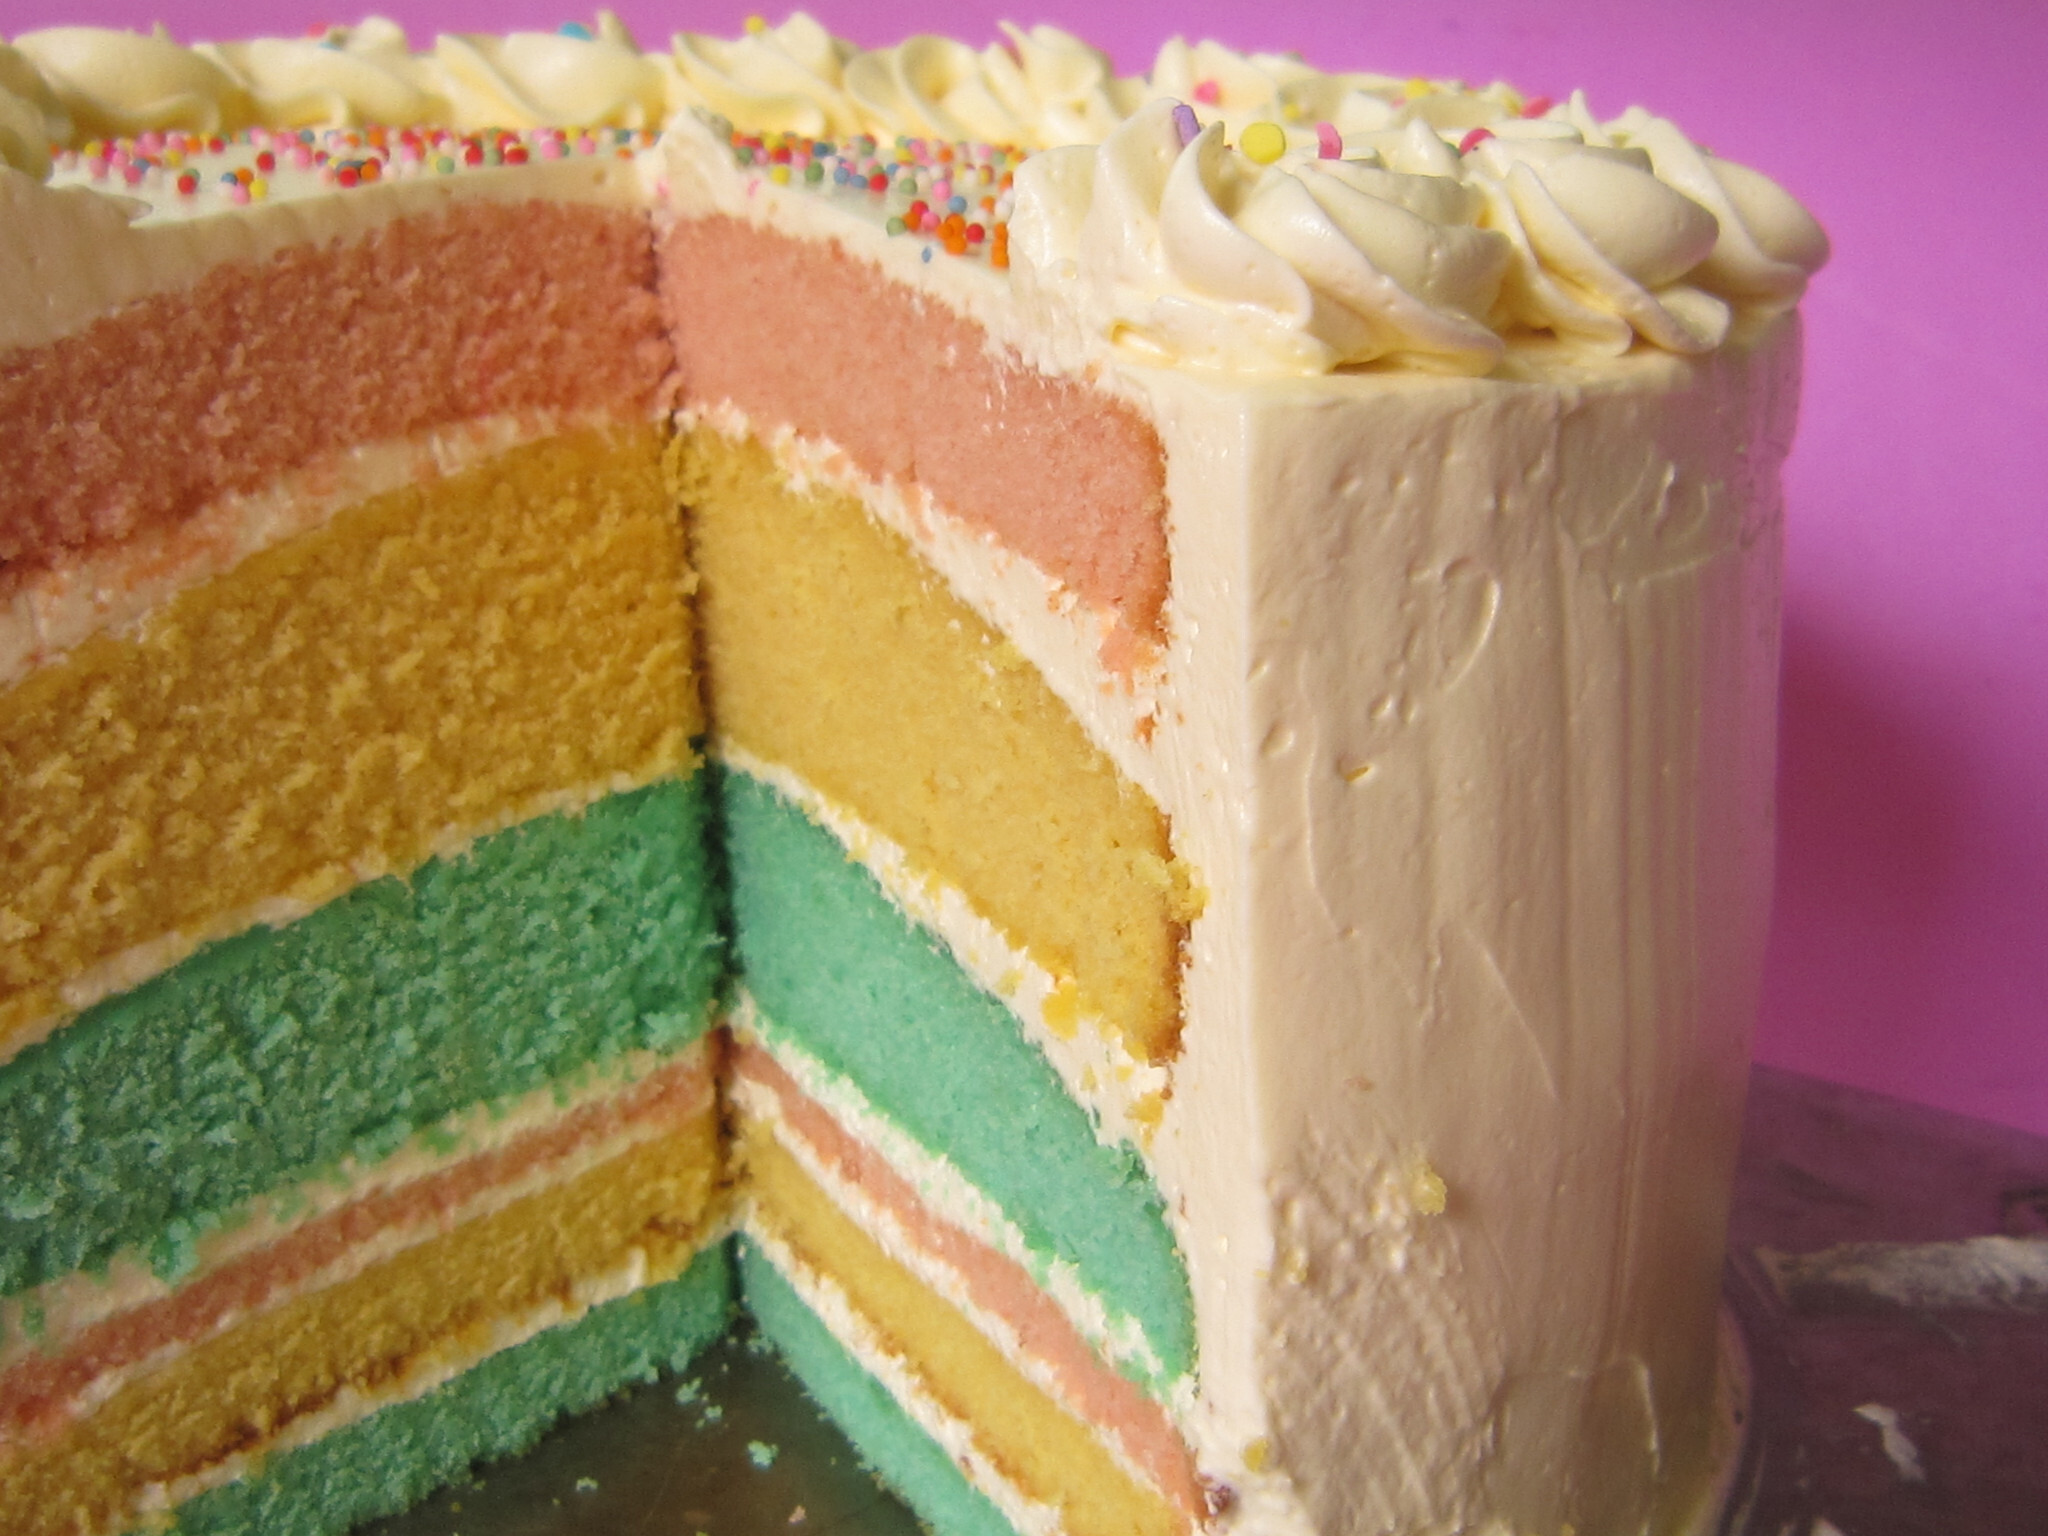 Rainbow cake: butter cake tipe with flour butter method